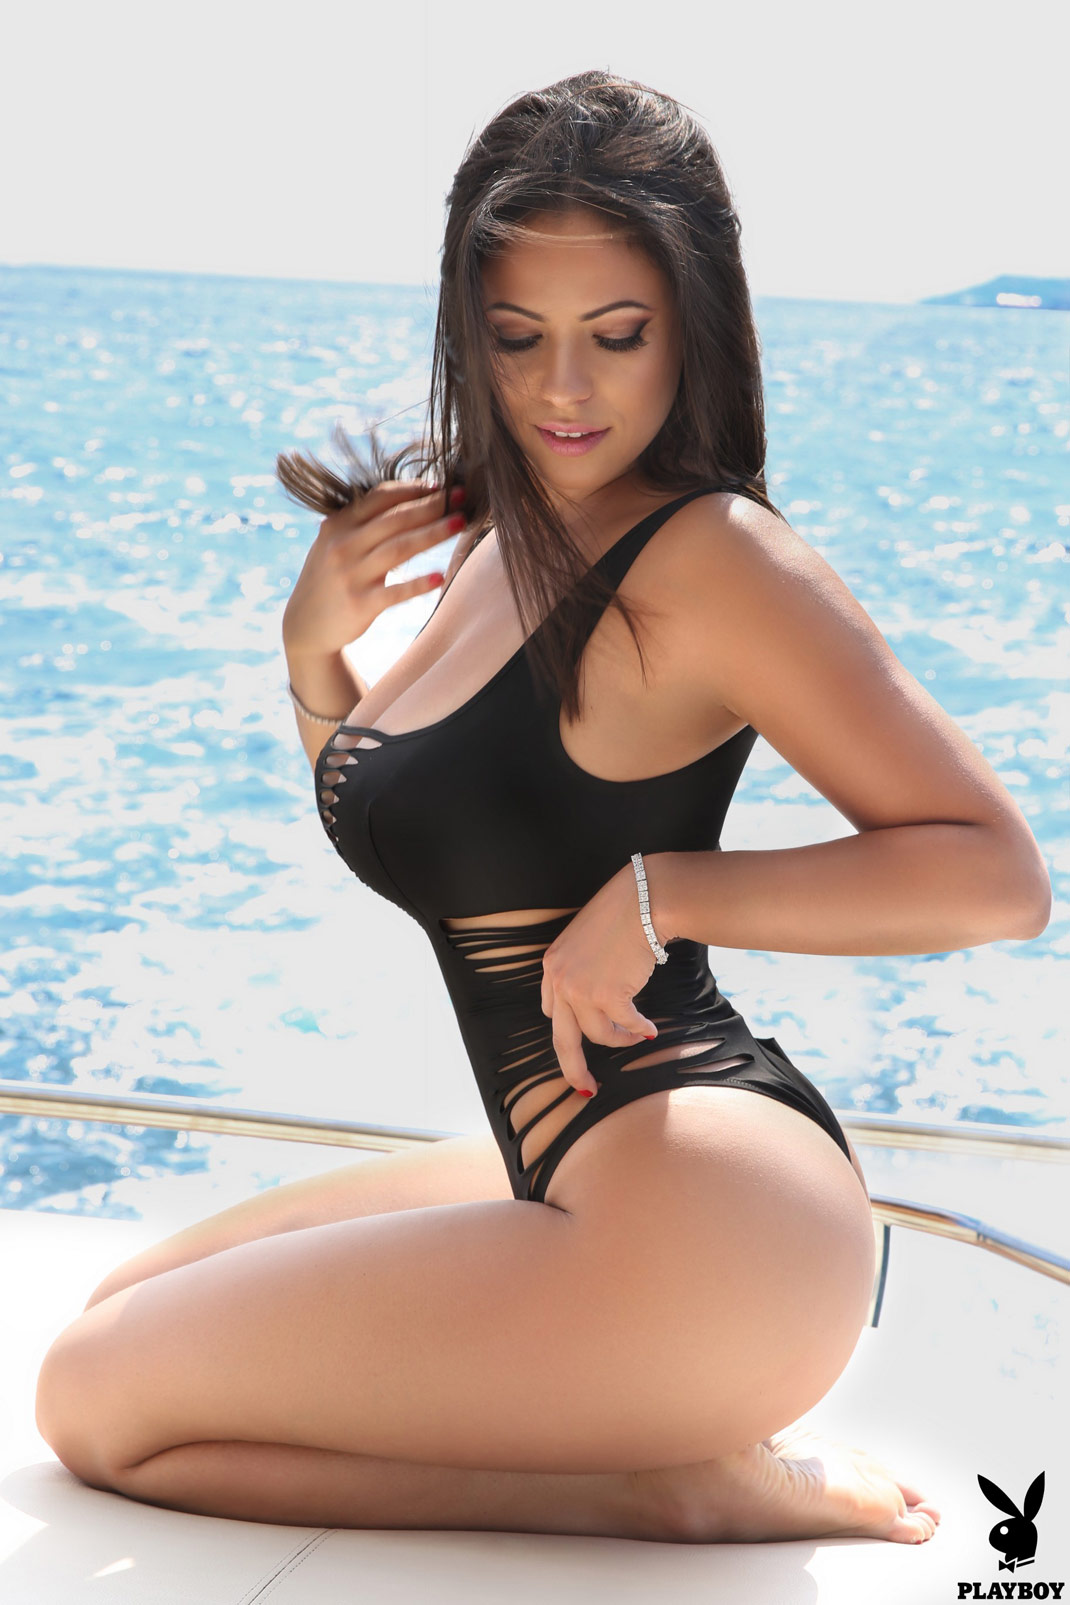 Fabiana Britto Naked on a Boat